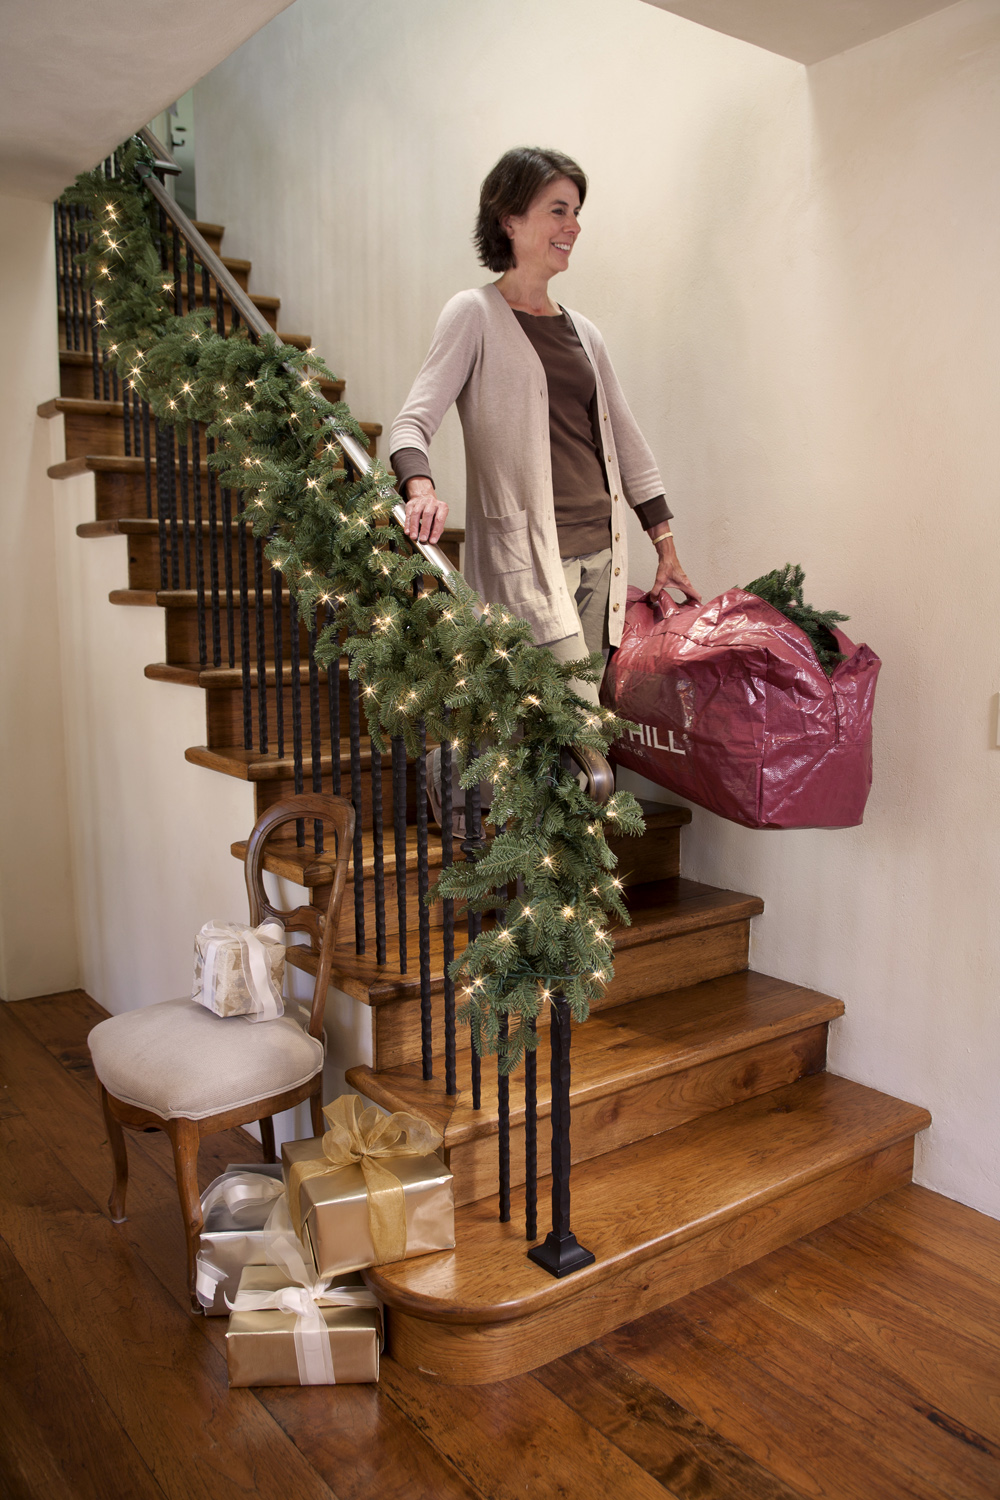 Taking Christmas decorations out of storage can be stress-free!